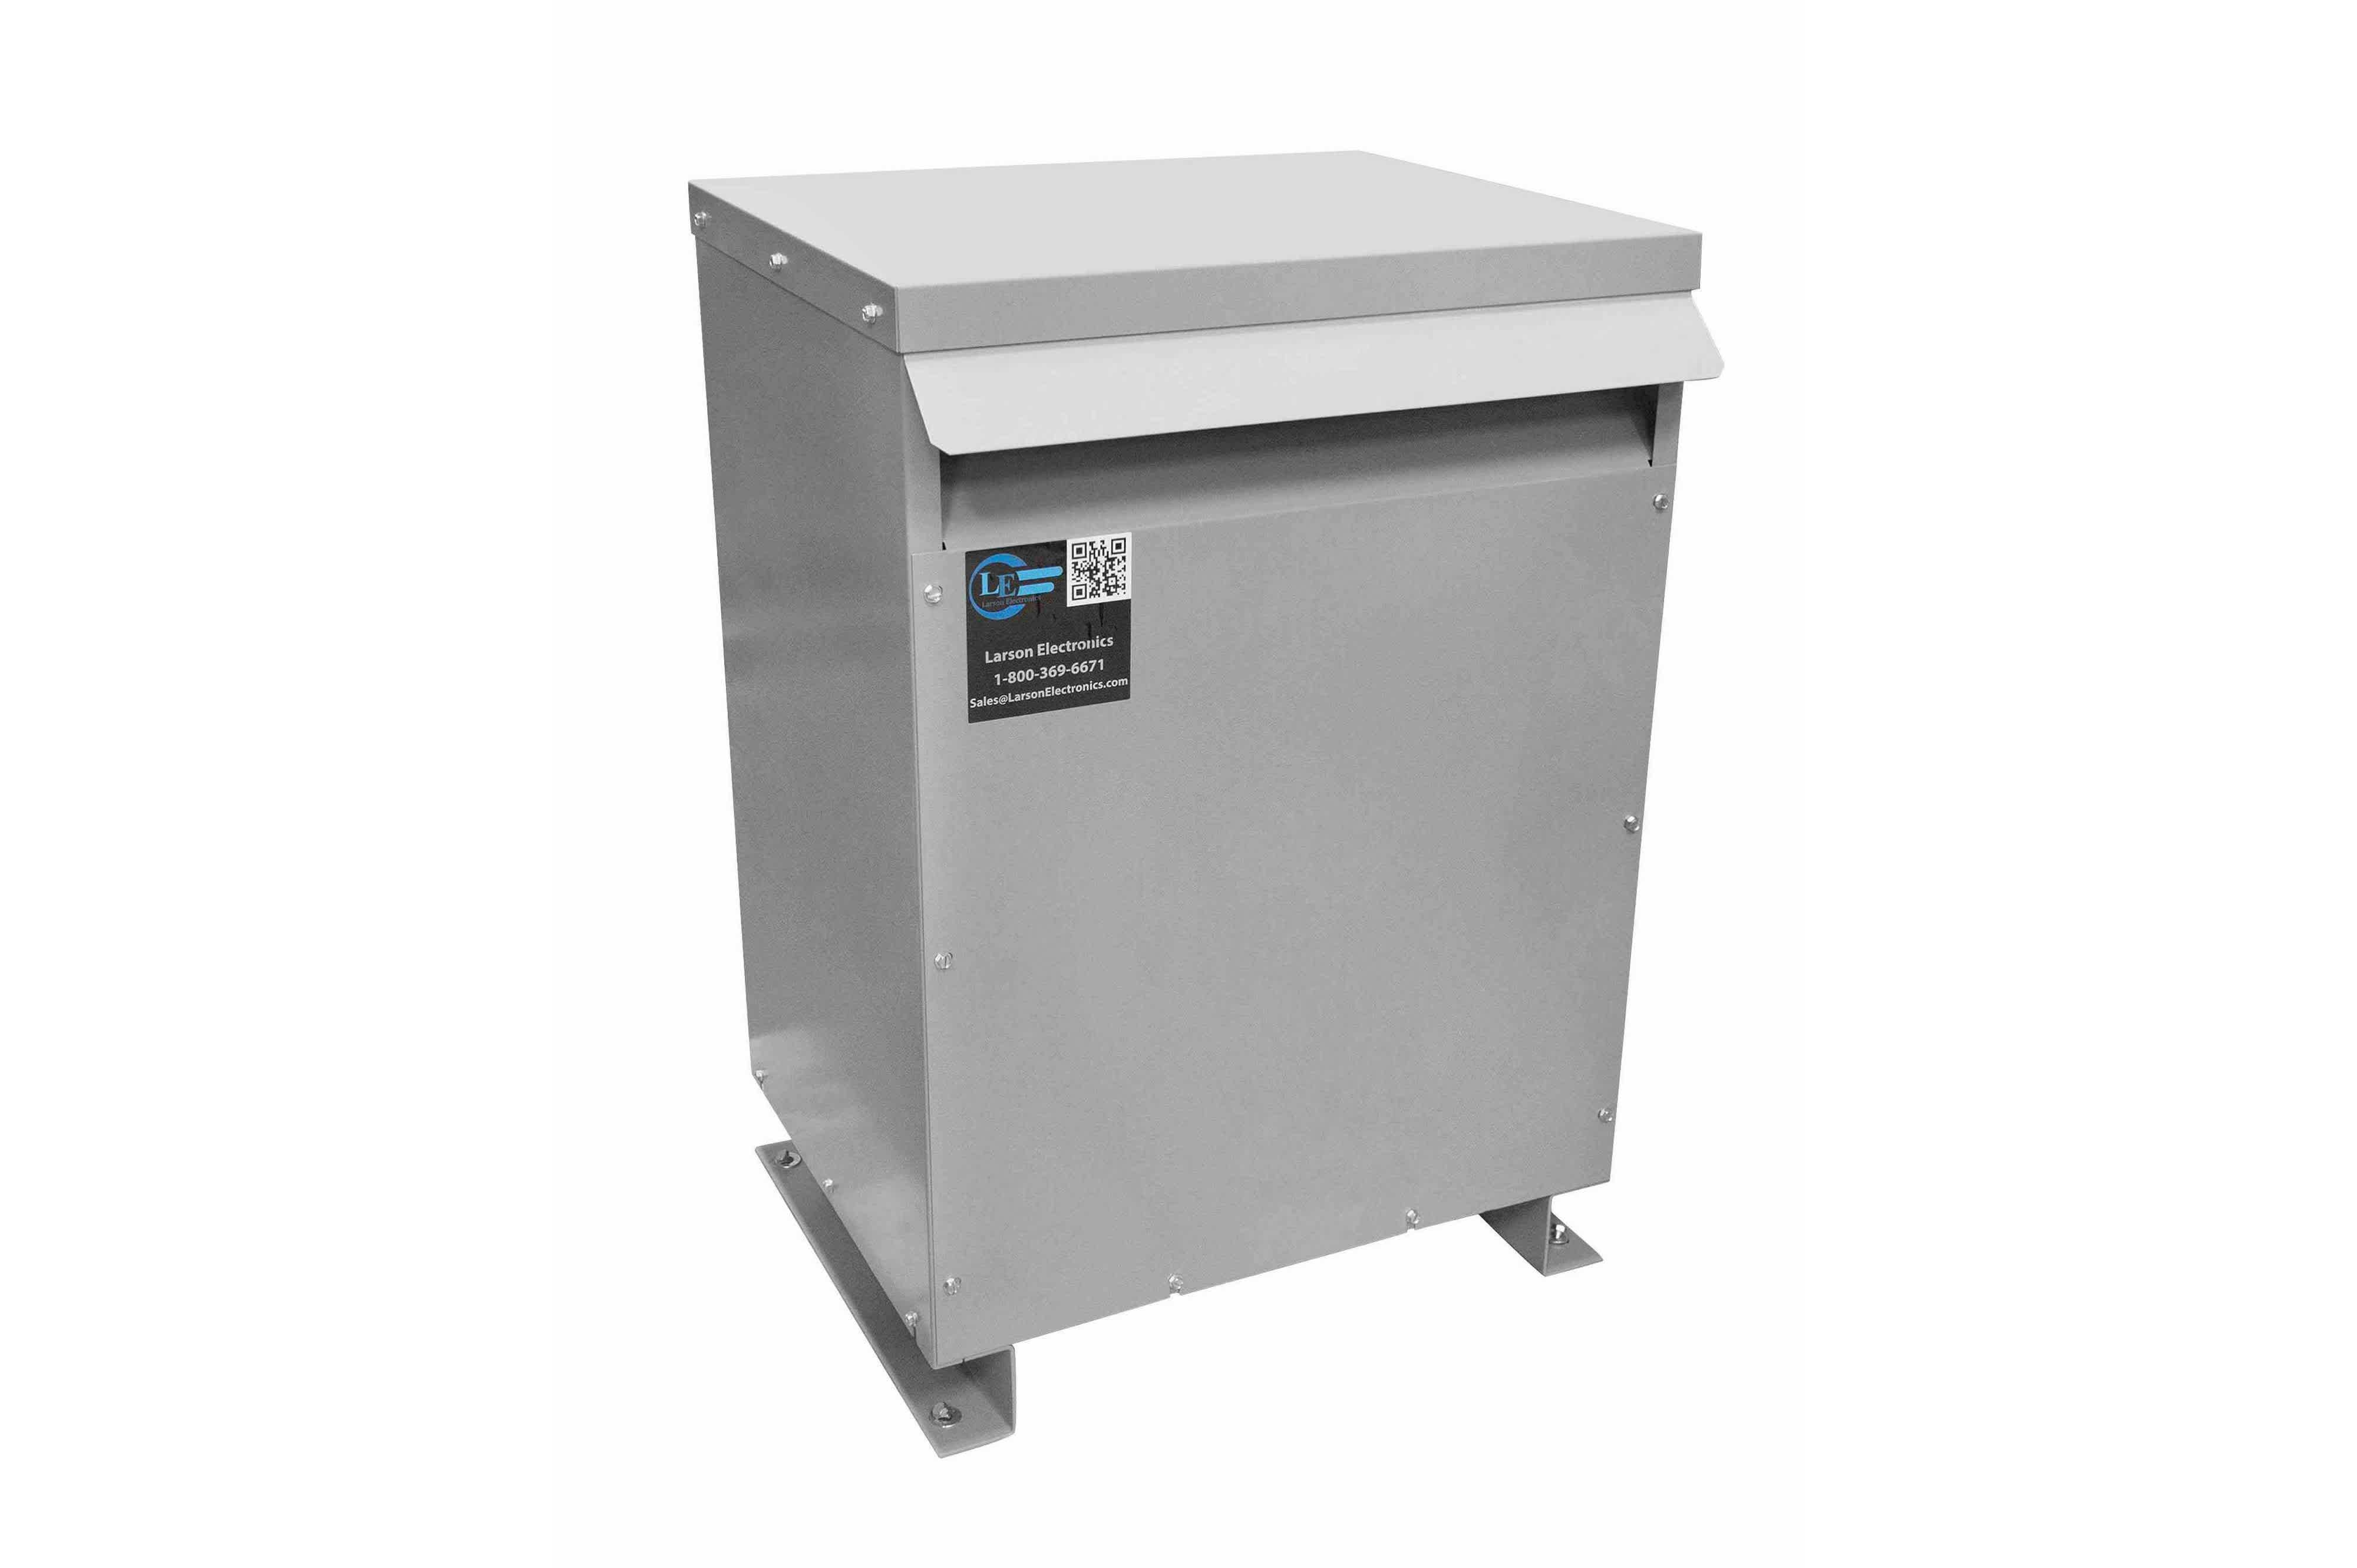 29 kVA 3PH Isolation Transformer, 208V Delta Primary, 240 Delta Secondary, N3R, Ventilated, 60 Hz